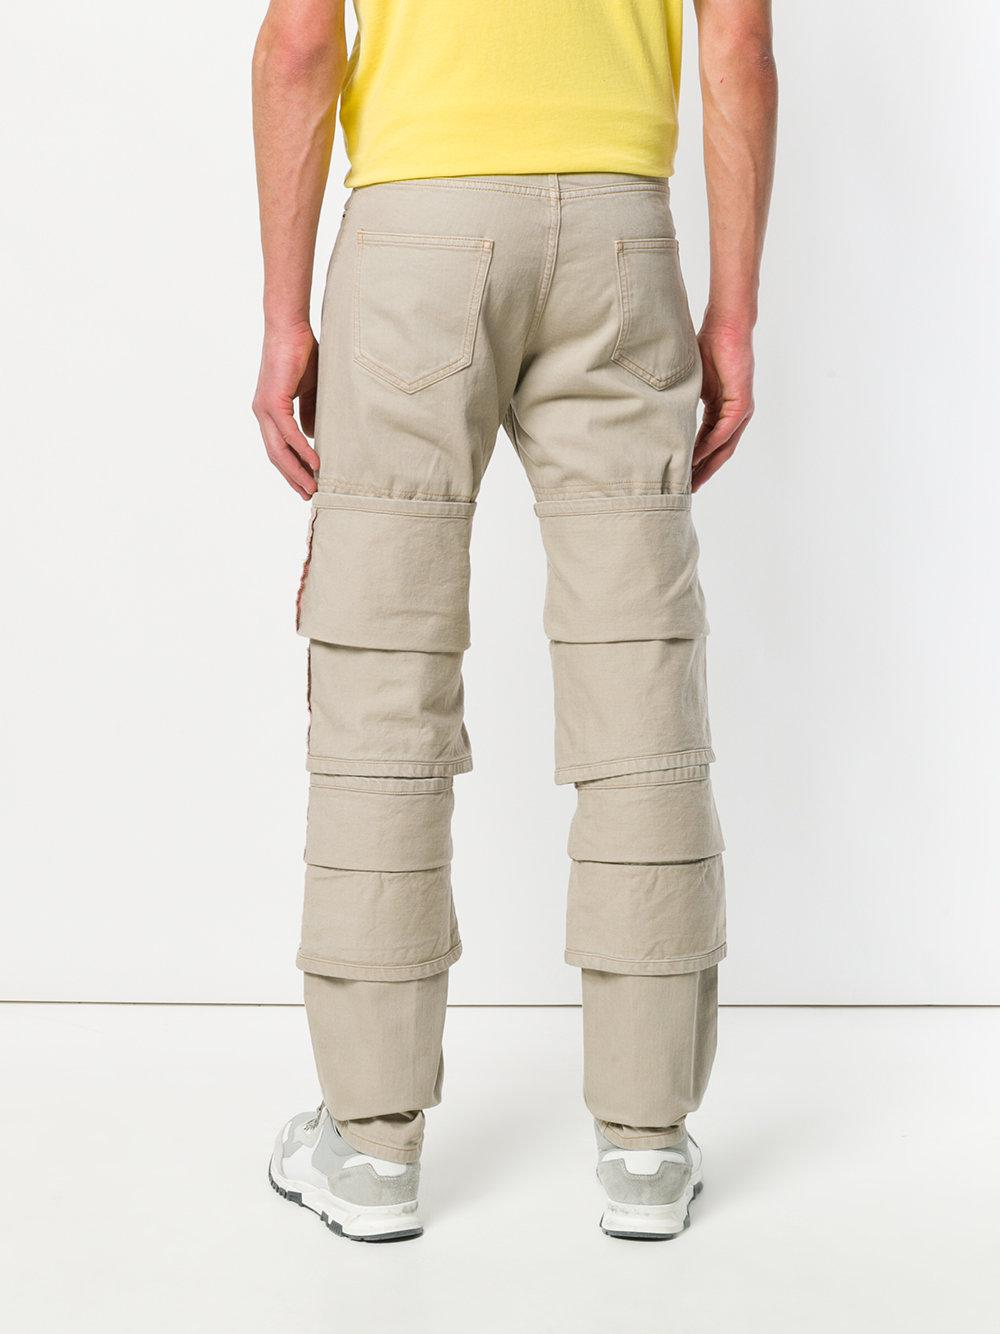 layered trousers - Nude & Neutrals Y / Project DNq7Le